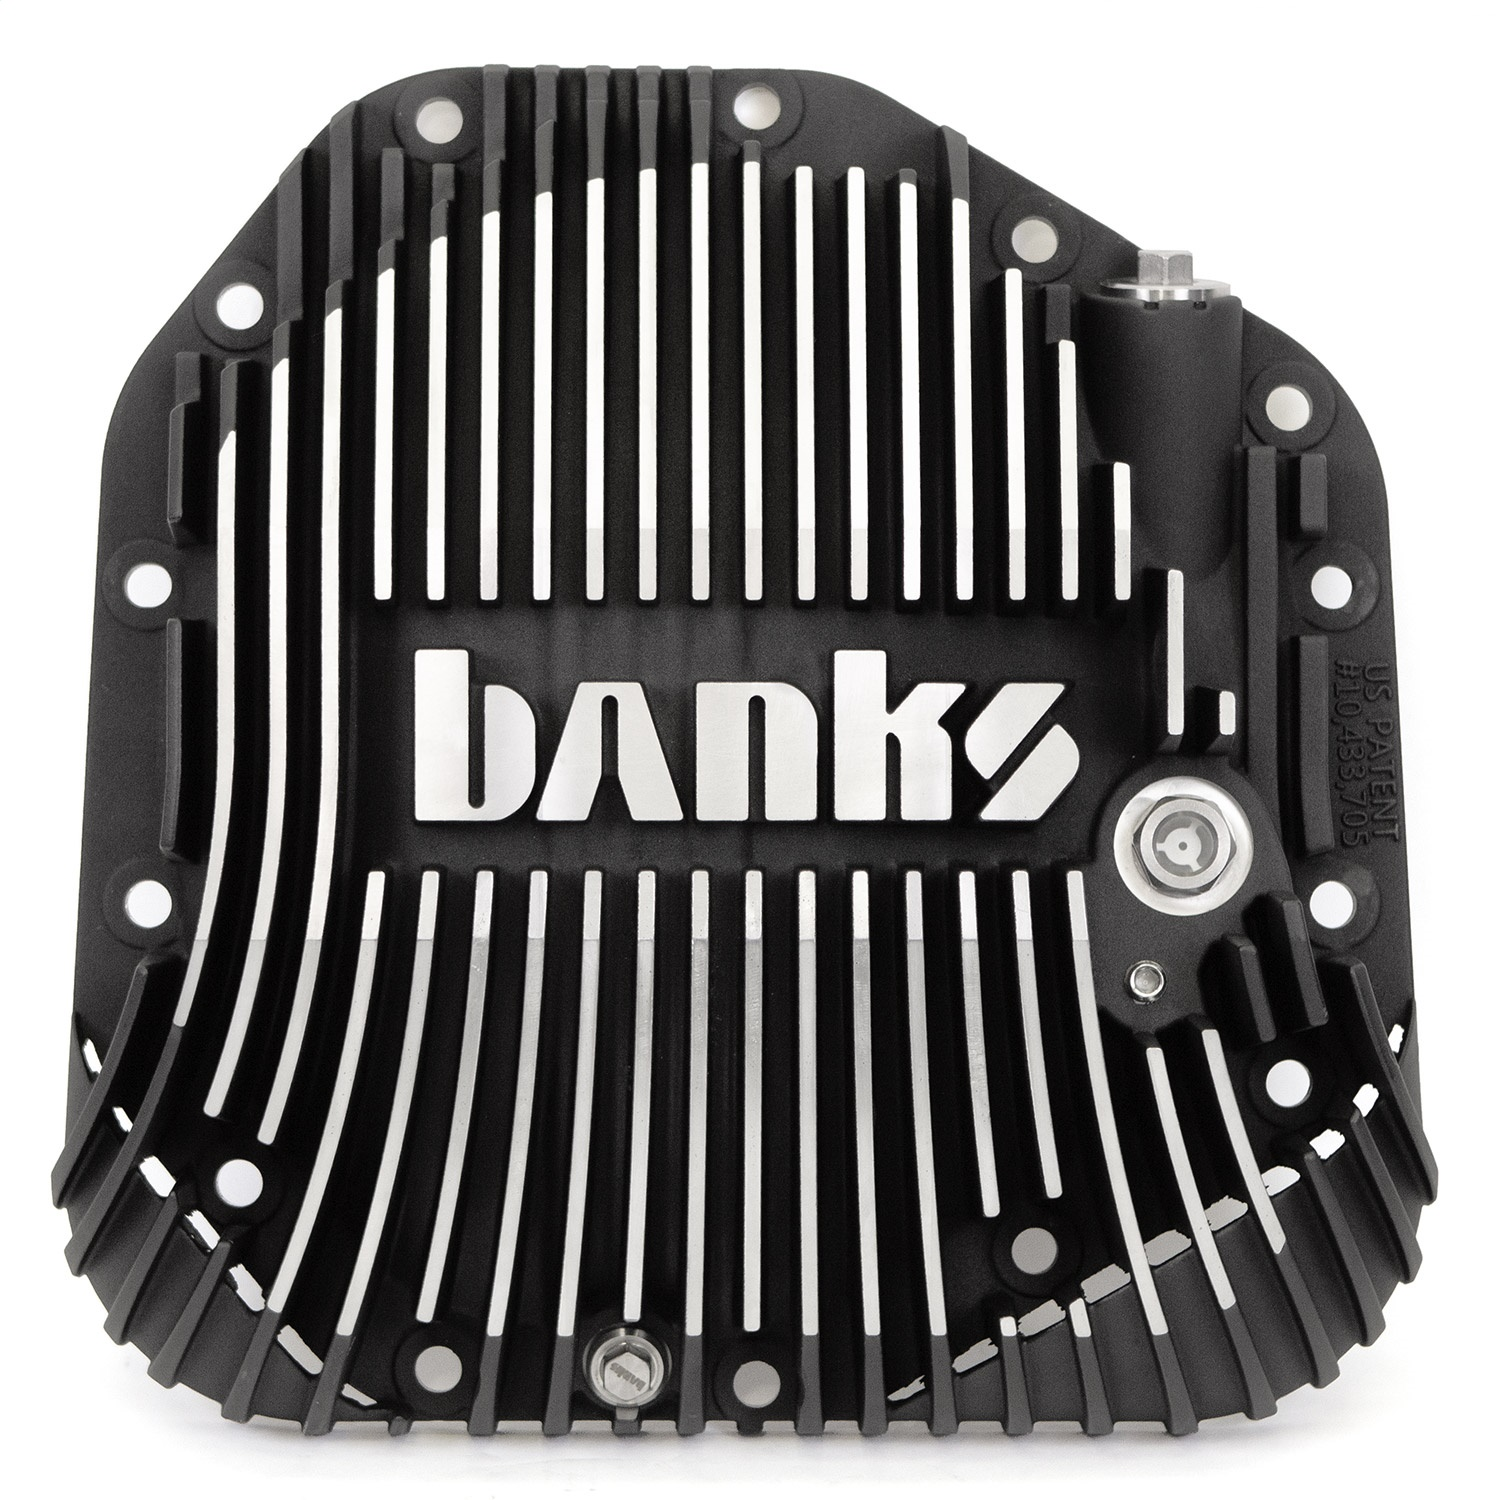 Banks Power 19280 Ram-Air Differential Cover Kit